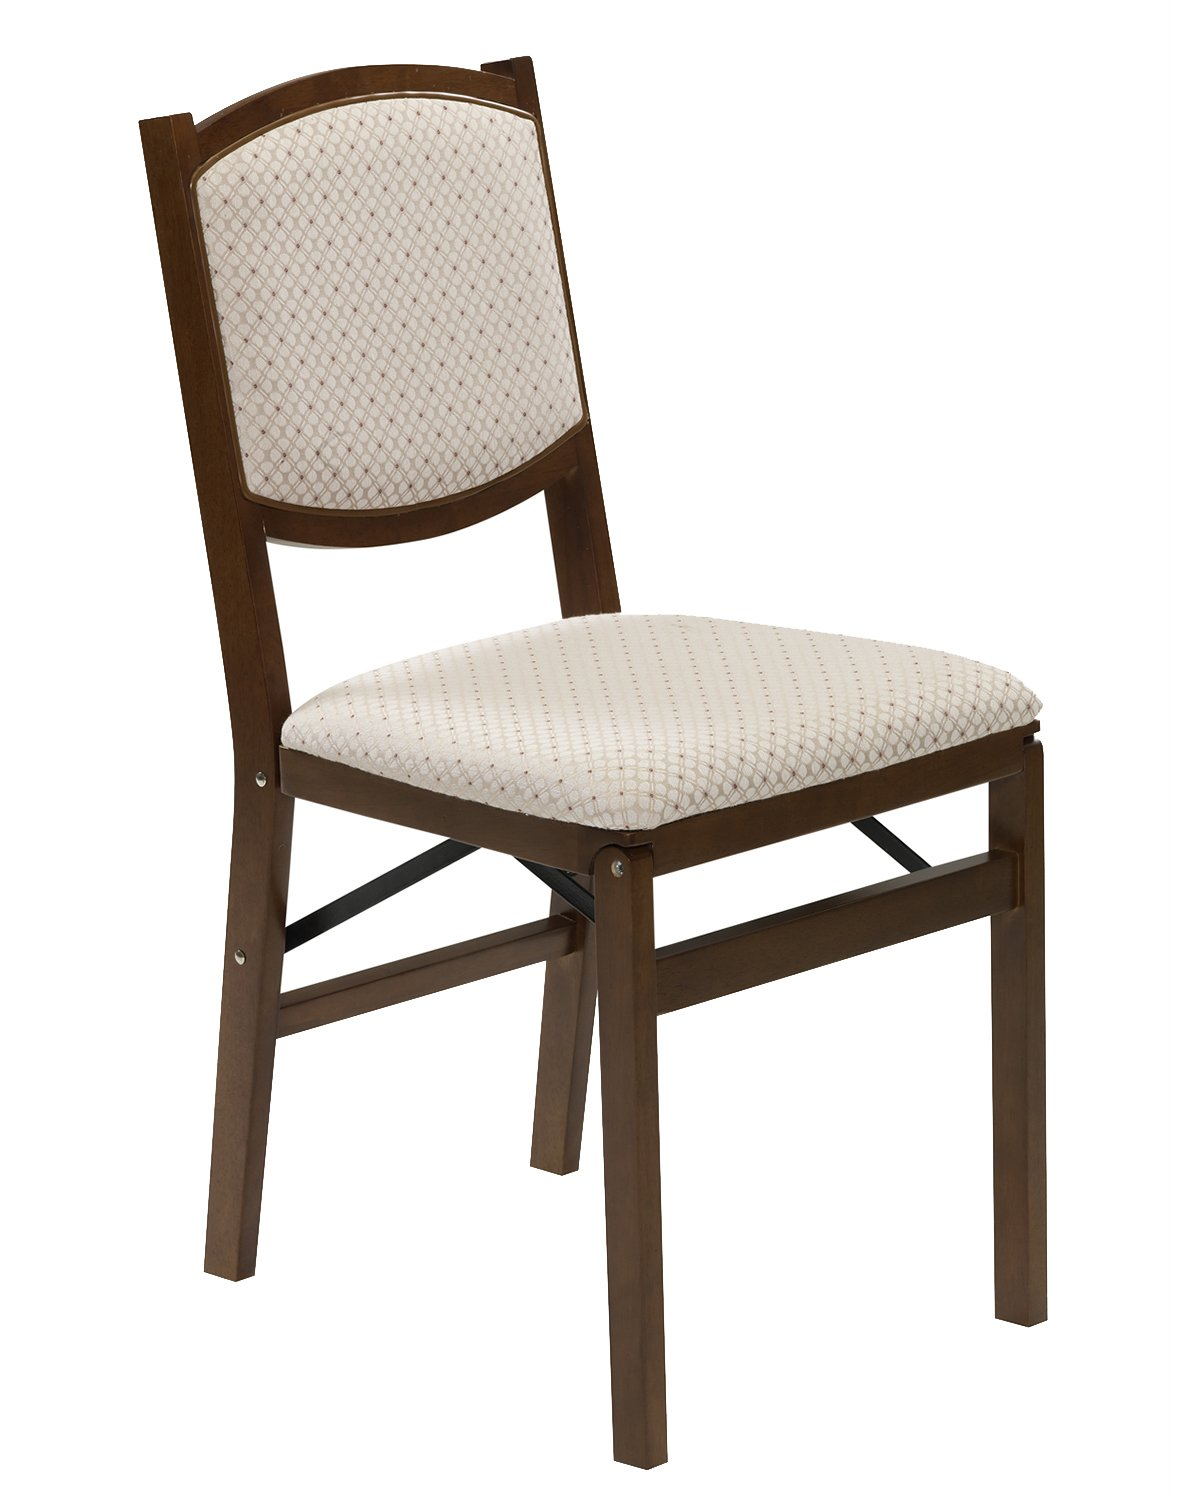 Stakmore Contemporary Upholstered Back Folding Chair Finish, Set of 2, Fruitwood by MECO